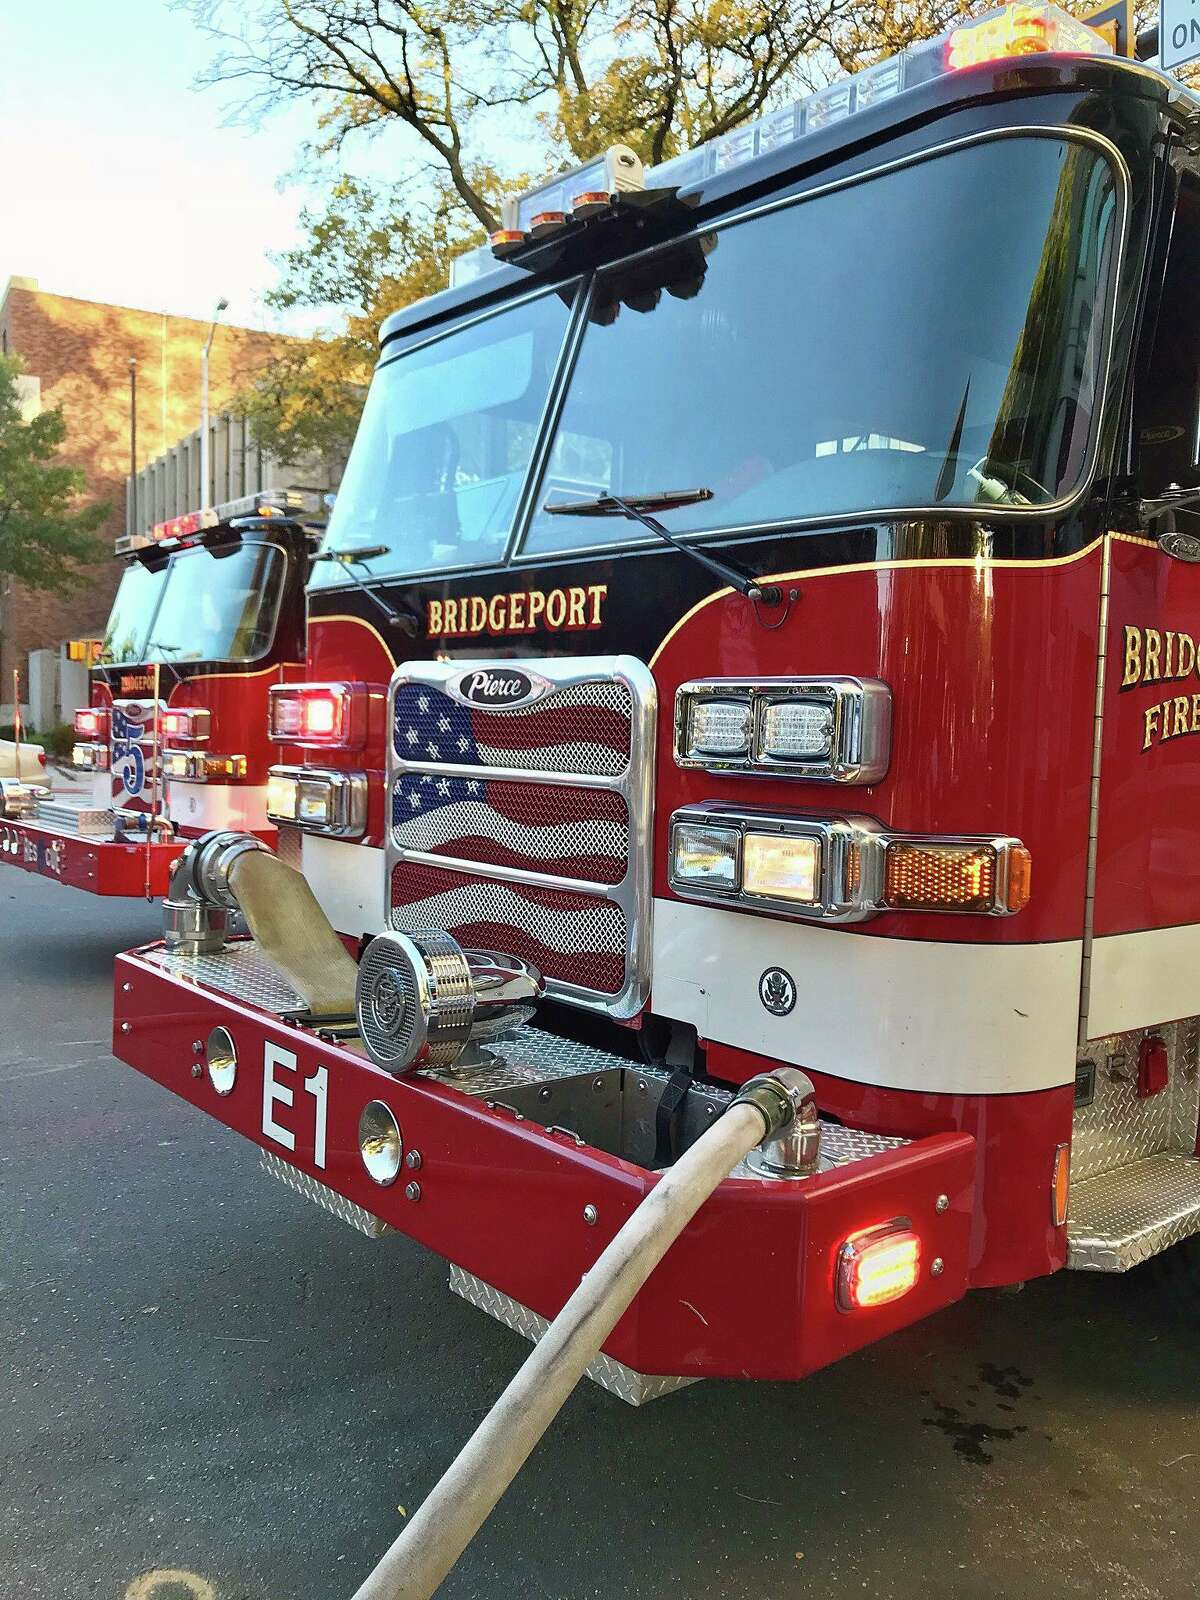 Firefighters responded to a Pearl Street residence in Bridgeport, Conn., shortly before 1 p.m. Thursday, July 8, 2021, and found a working fire.